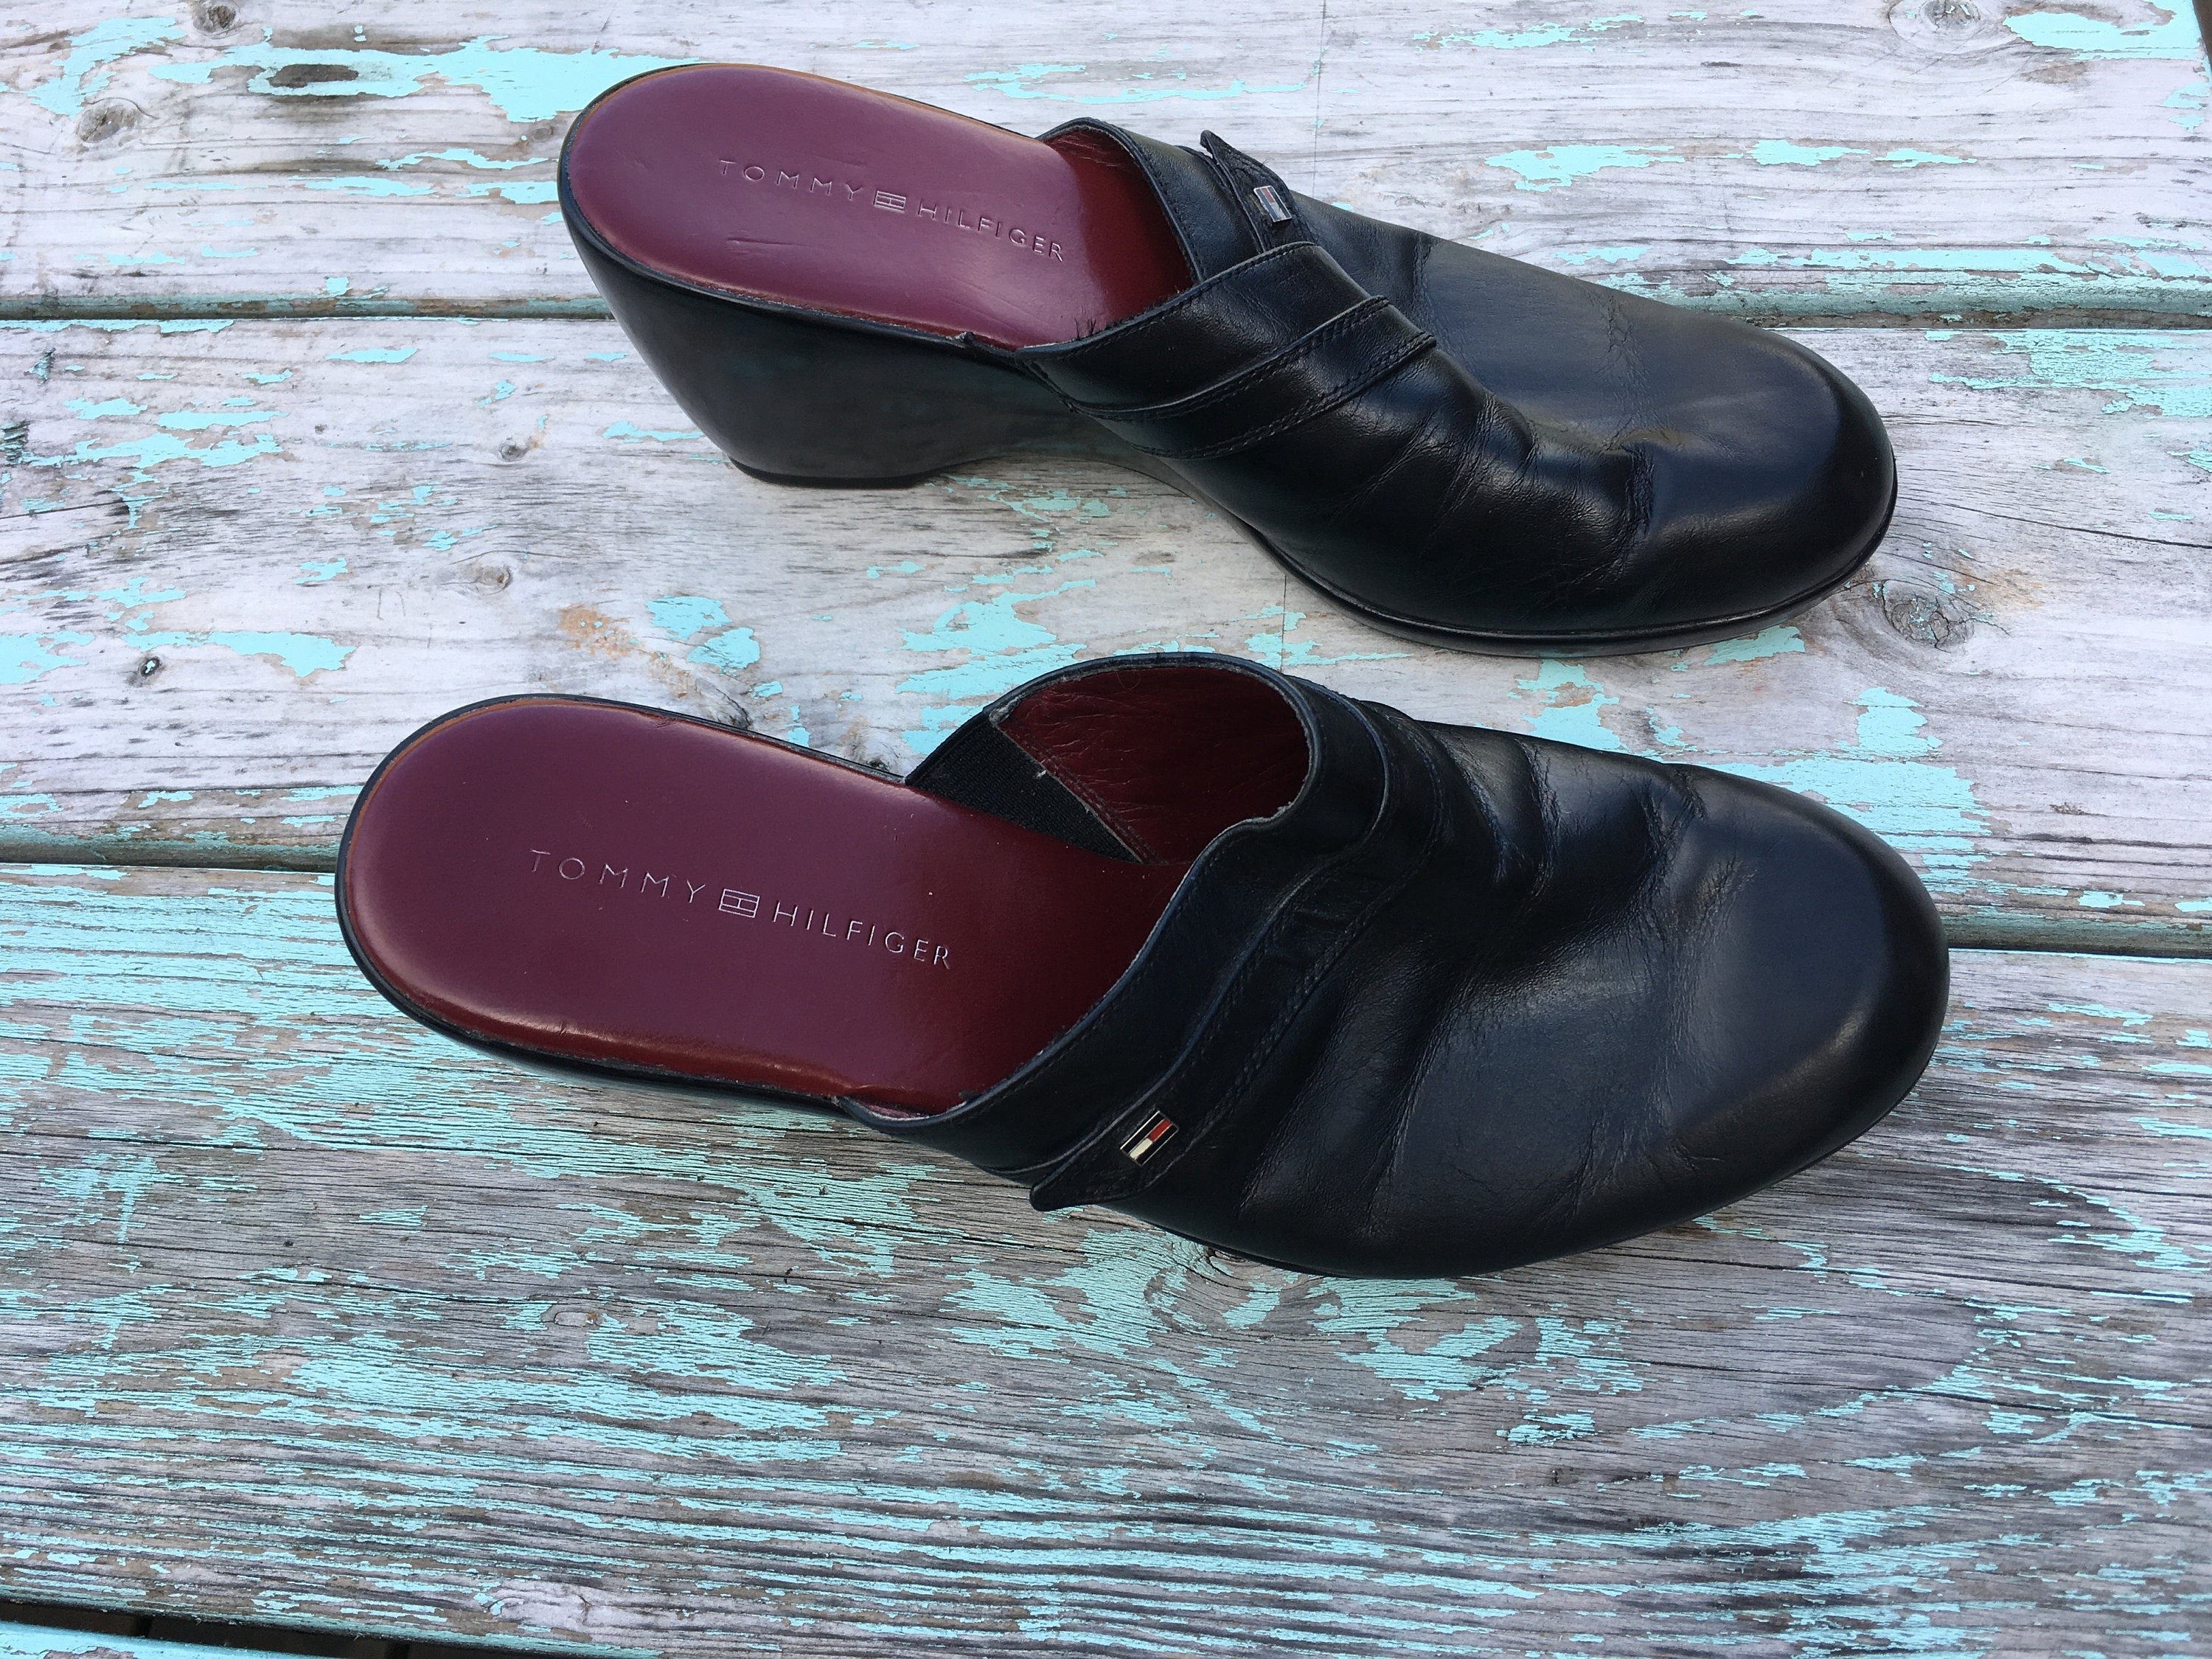 0535a86168f1cb Vintage 90s Tommy Hilfiger Mules Black Leather Slip on Shoes